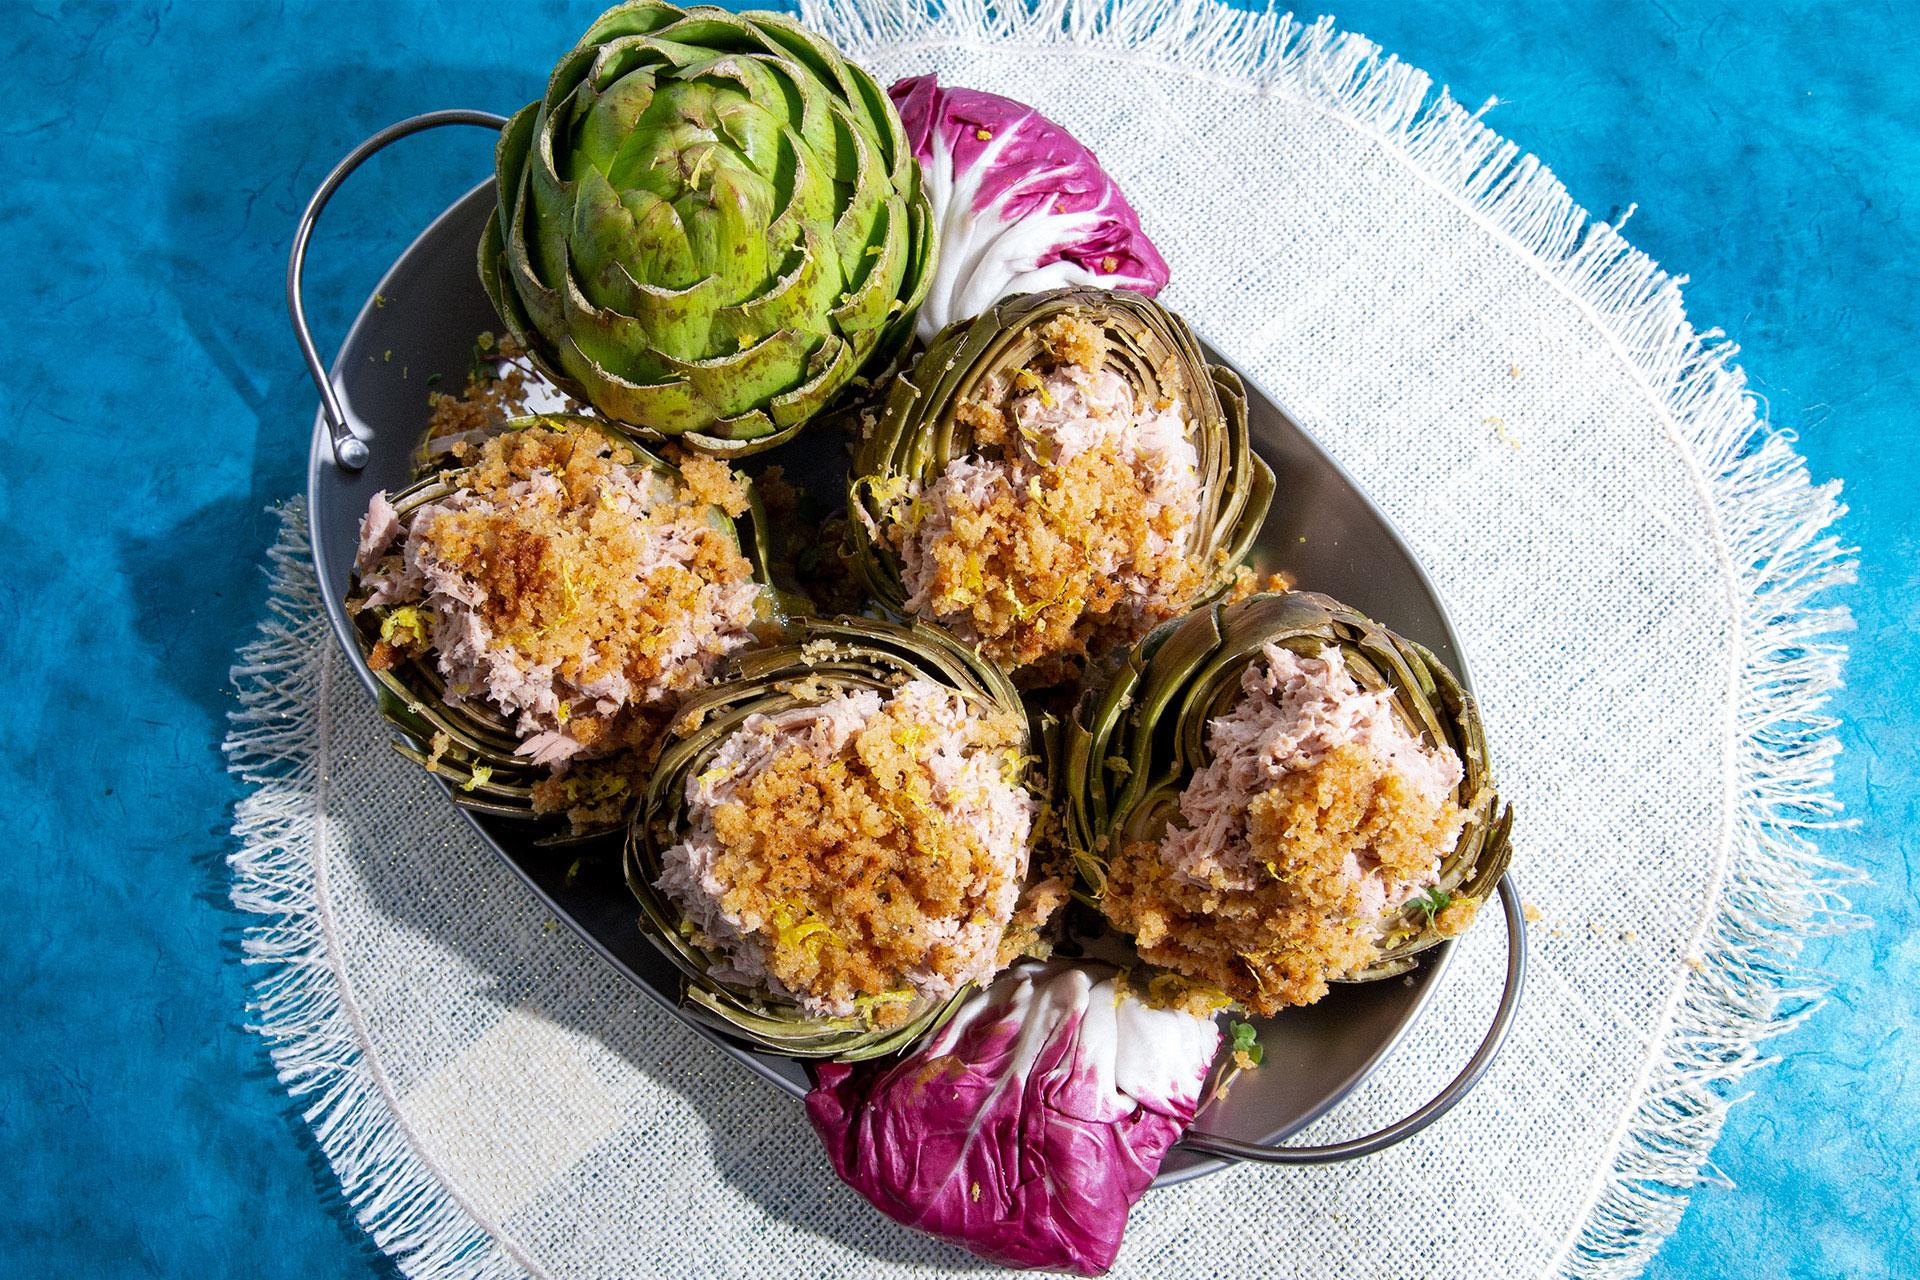 Tuna Stuffed Artichokes